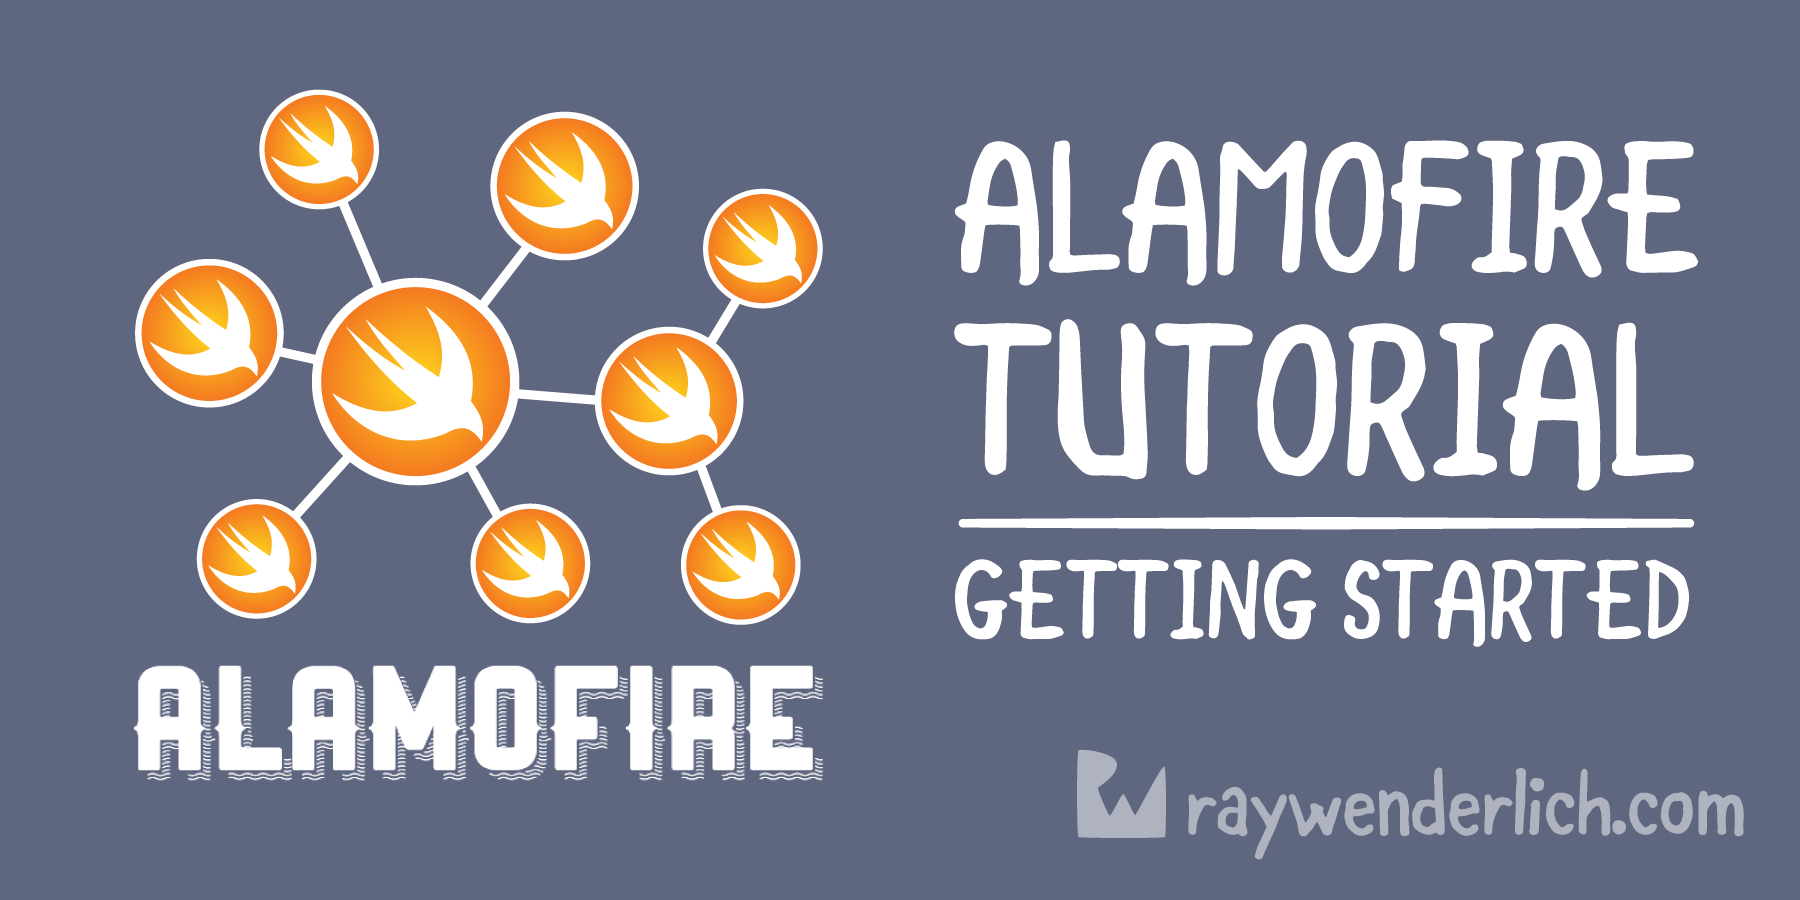 Alamofire Tutorial: Getting Started | raywenderlich com